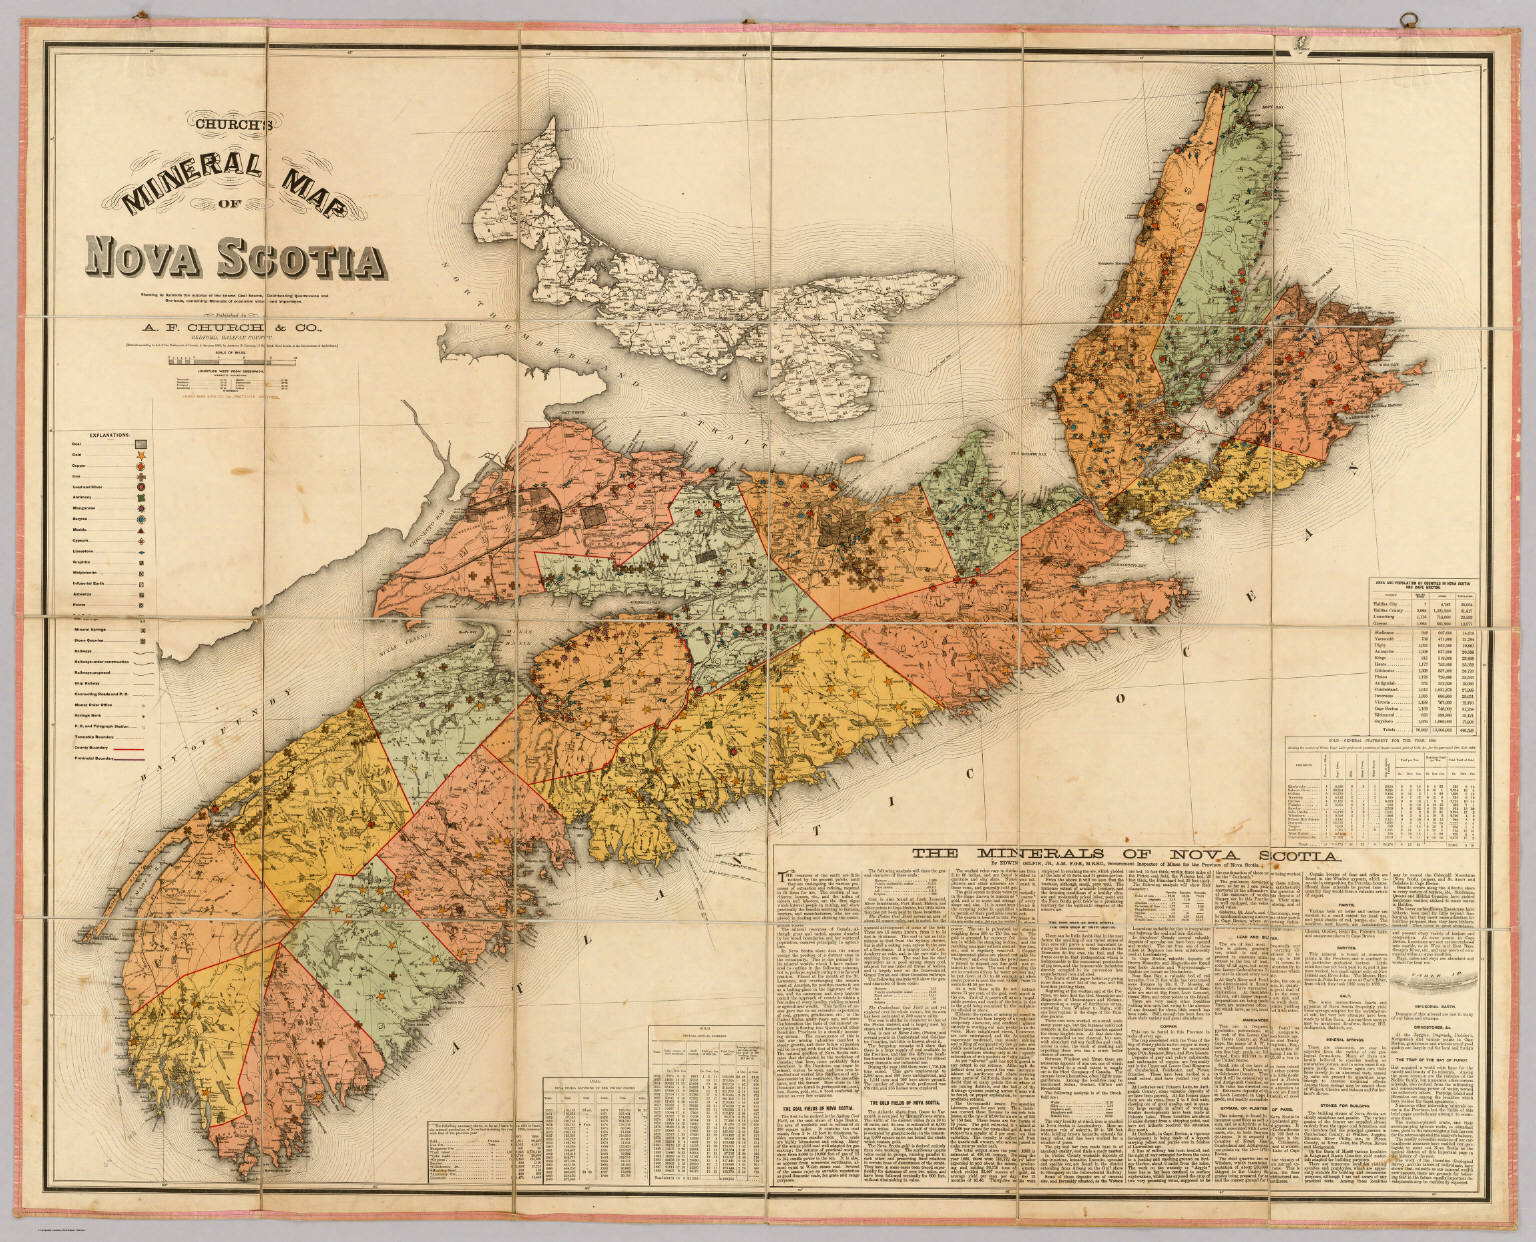 Nova Scotia maps & data - Churchs mineral map of Nova Scotia